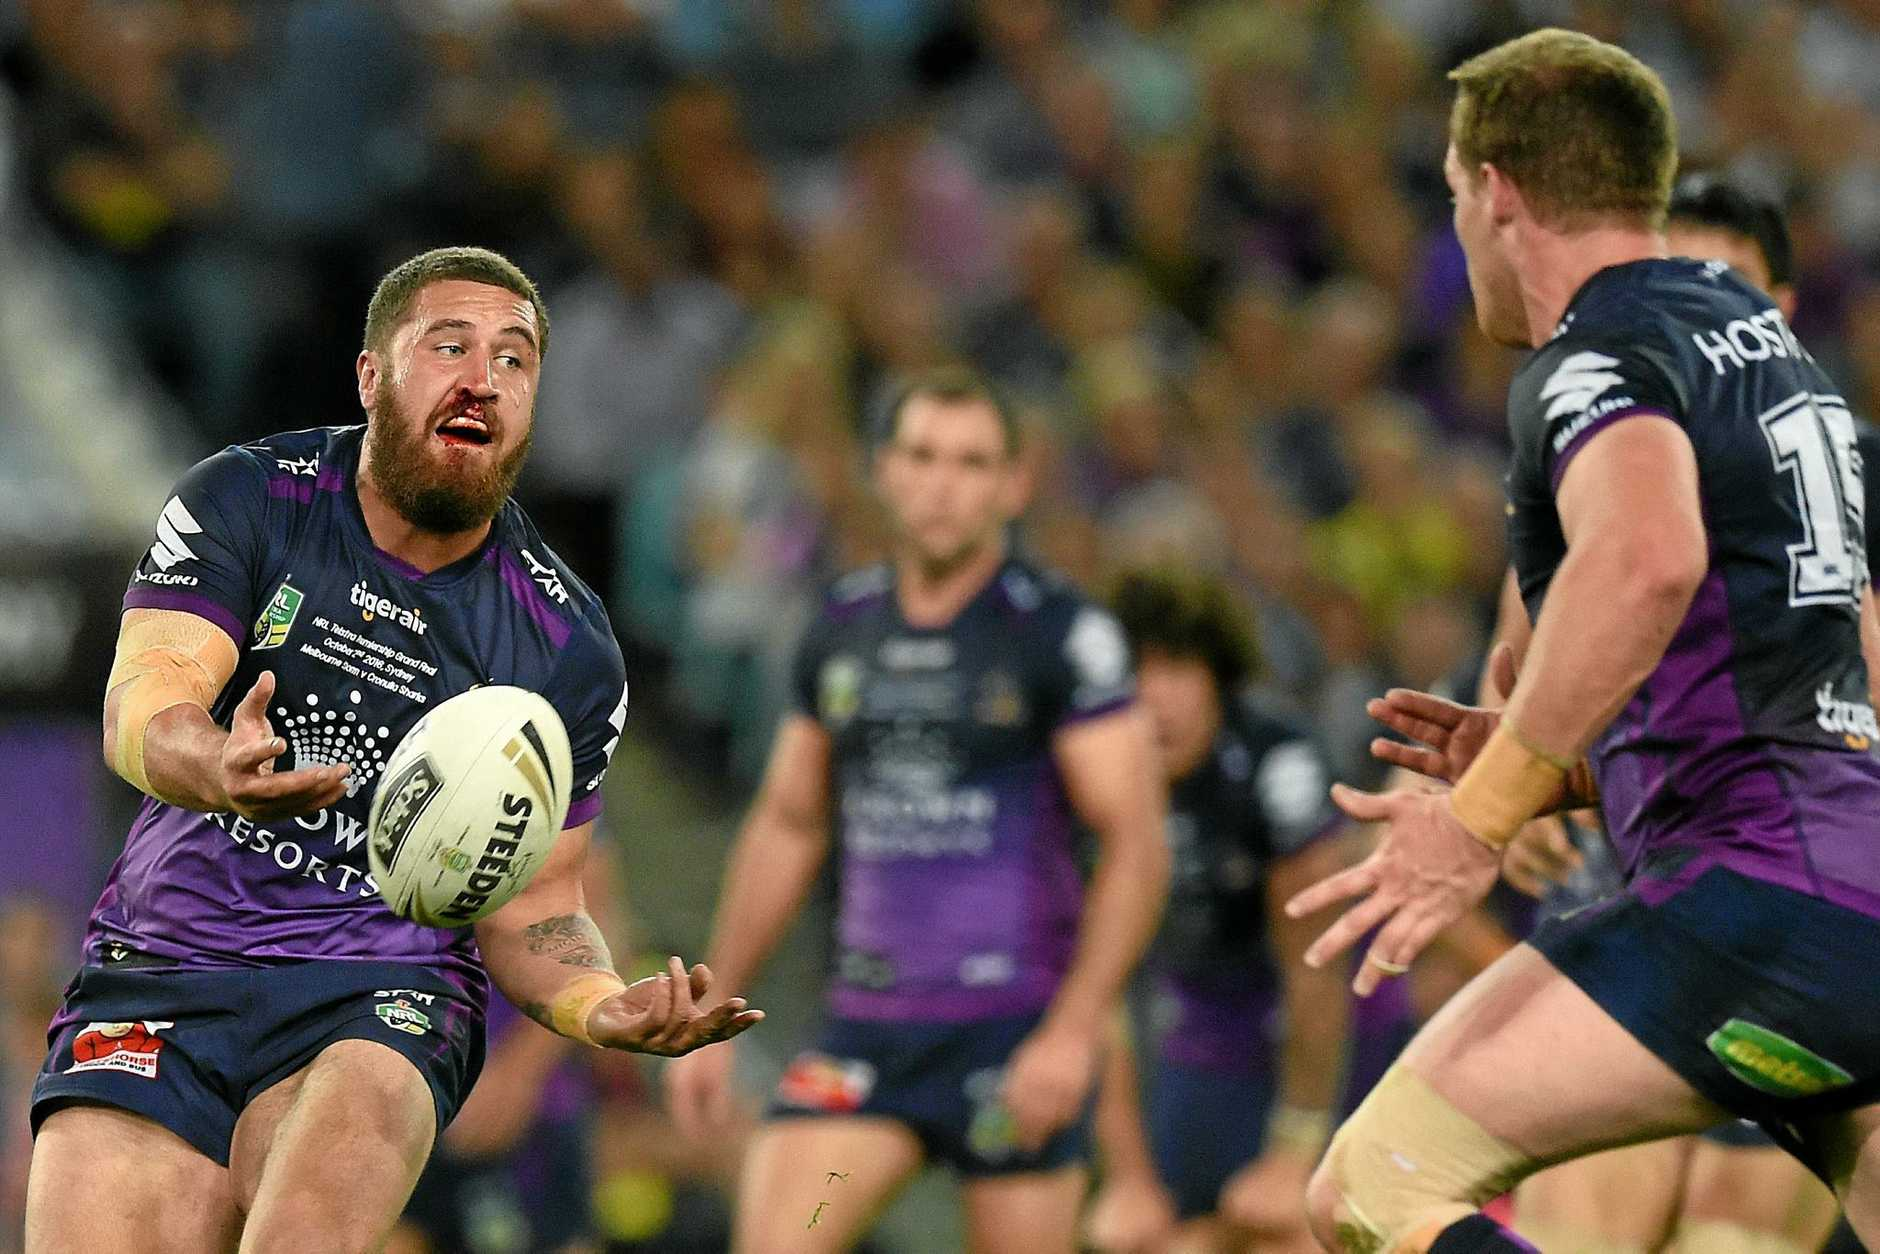 CAPTAIN: Kenny Bromwich will lead the Storm in its NRL trial against the Warriors at Kawana on Saturday. There are hopes Sunshine Coast Stadium will be able to host an NRL, Super Rugby or A-League regular season game in the next few years.